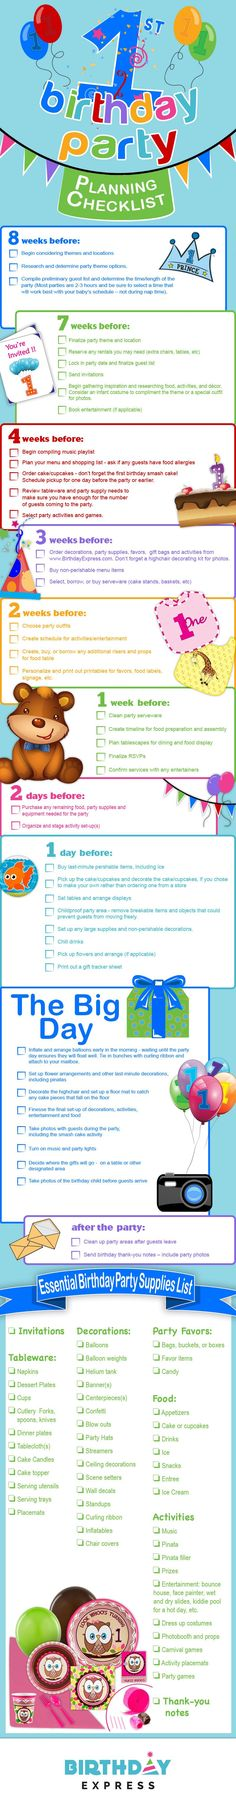 Let BirthdayExpress help you with your child's 1st birthday with this fantastic Party Planning Checklist!